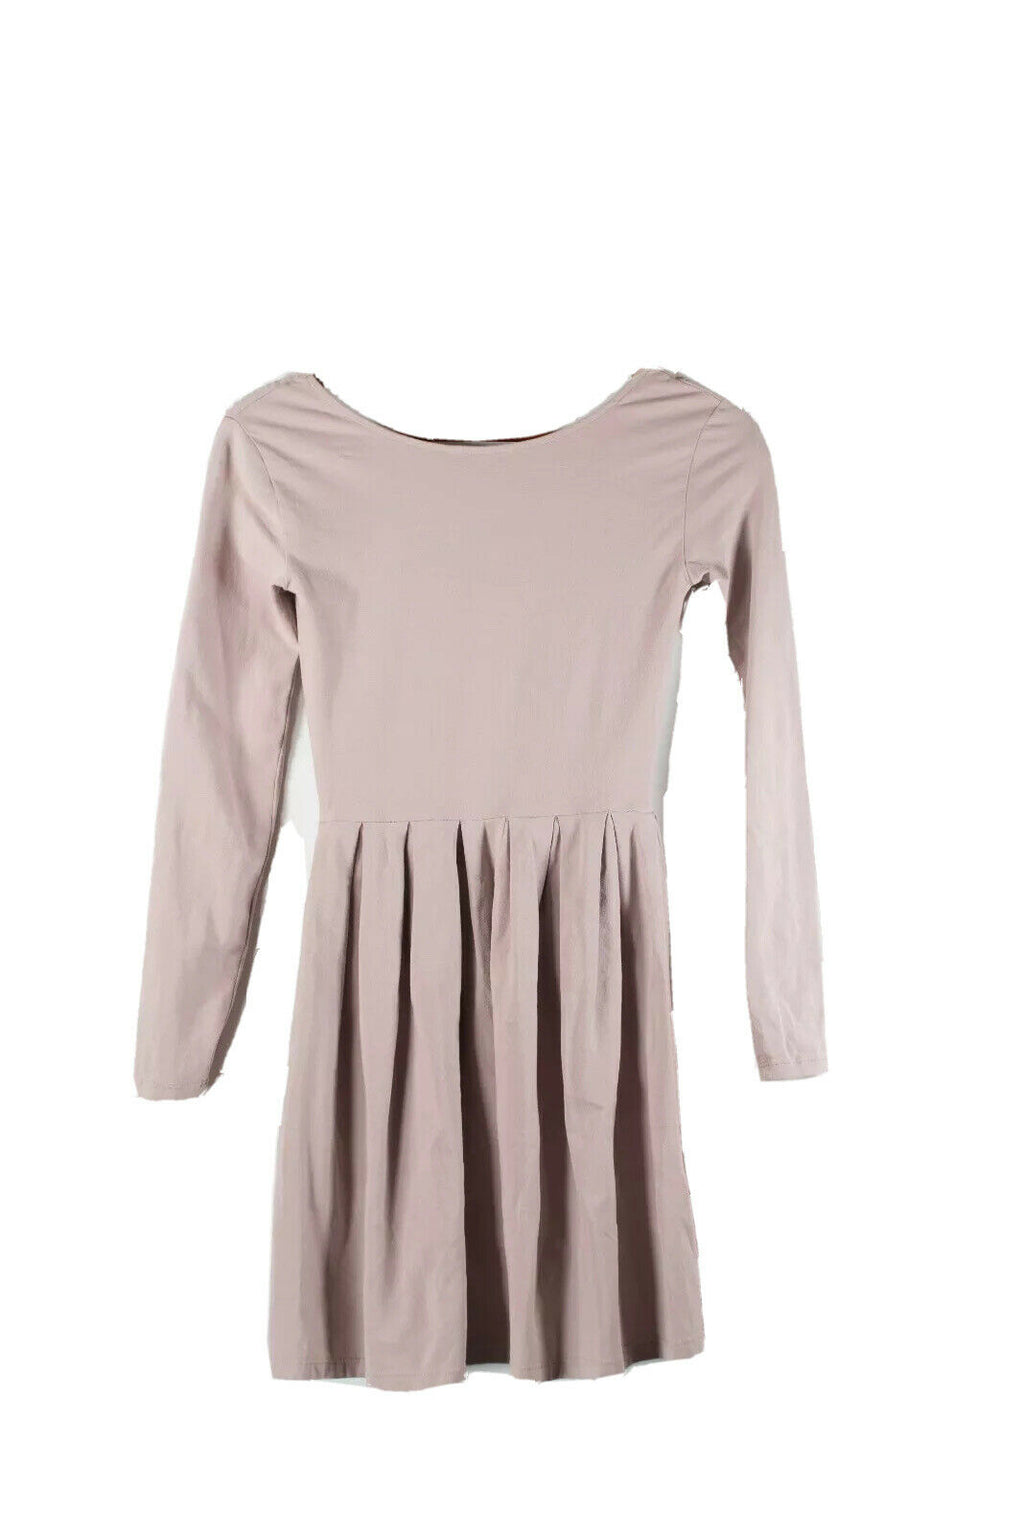 Aritzia Talula Size XXS Blush Pink Pleated Dress